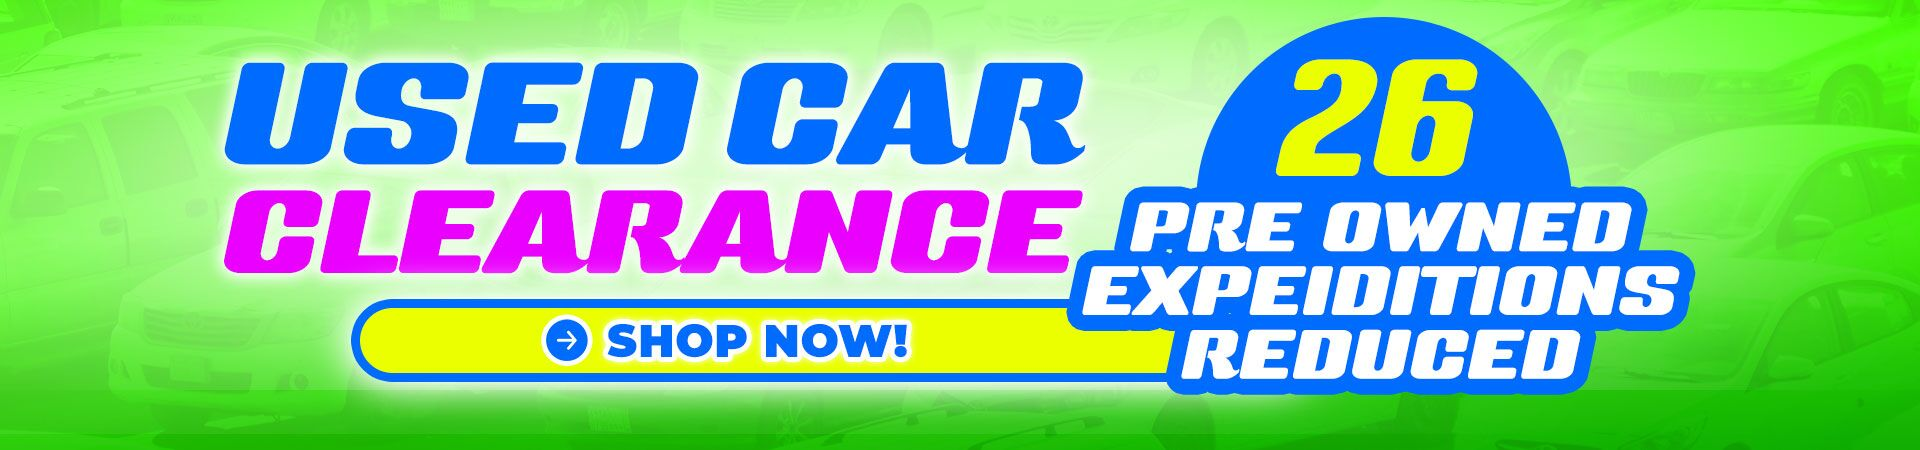 Used Car Clearance - 26 Pre-Owned